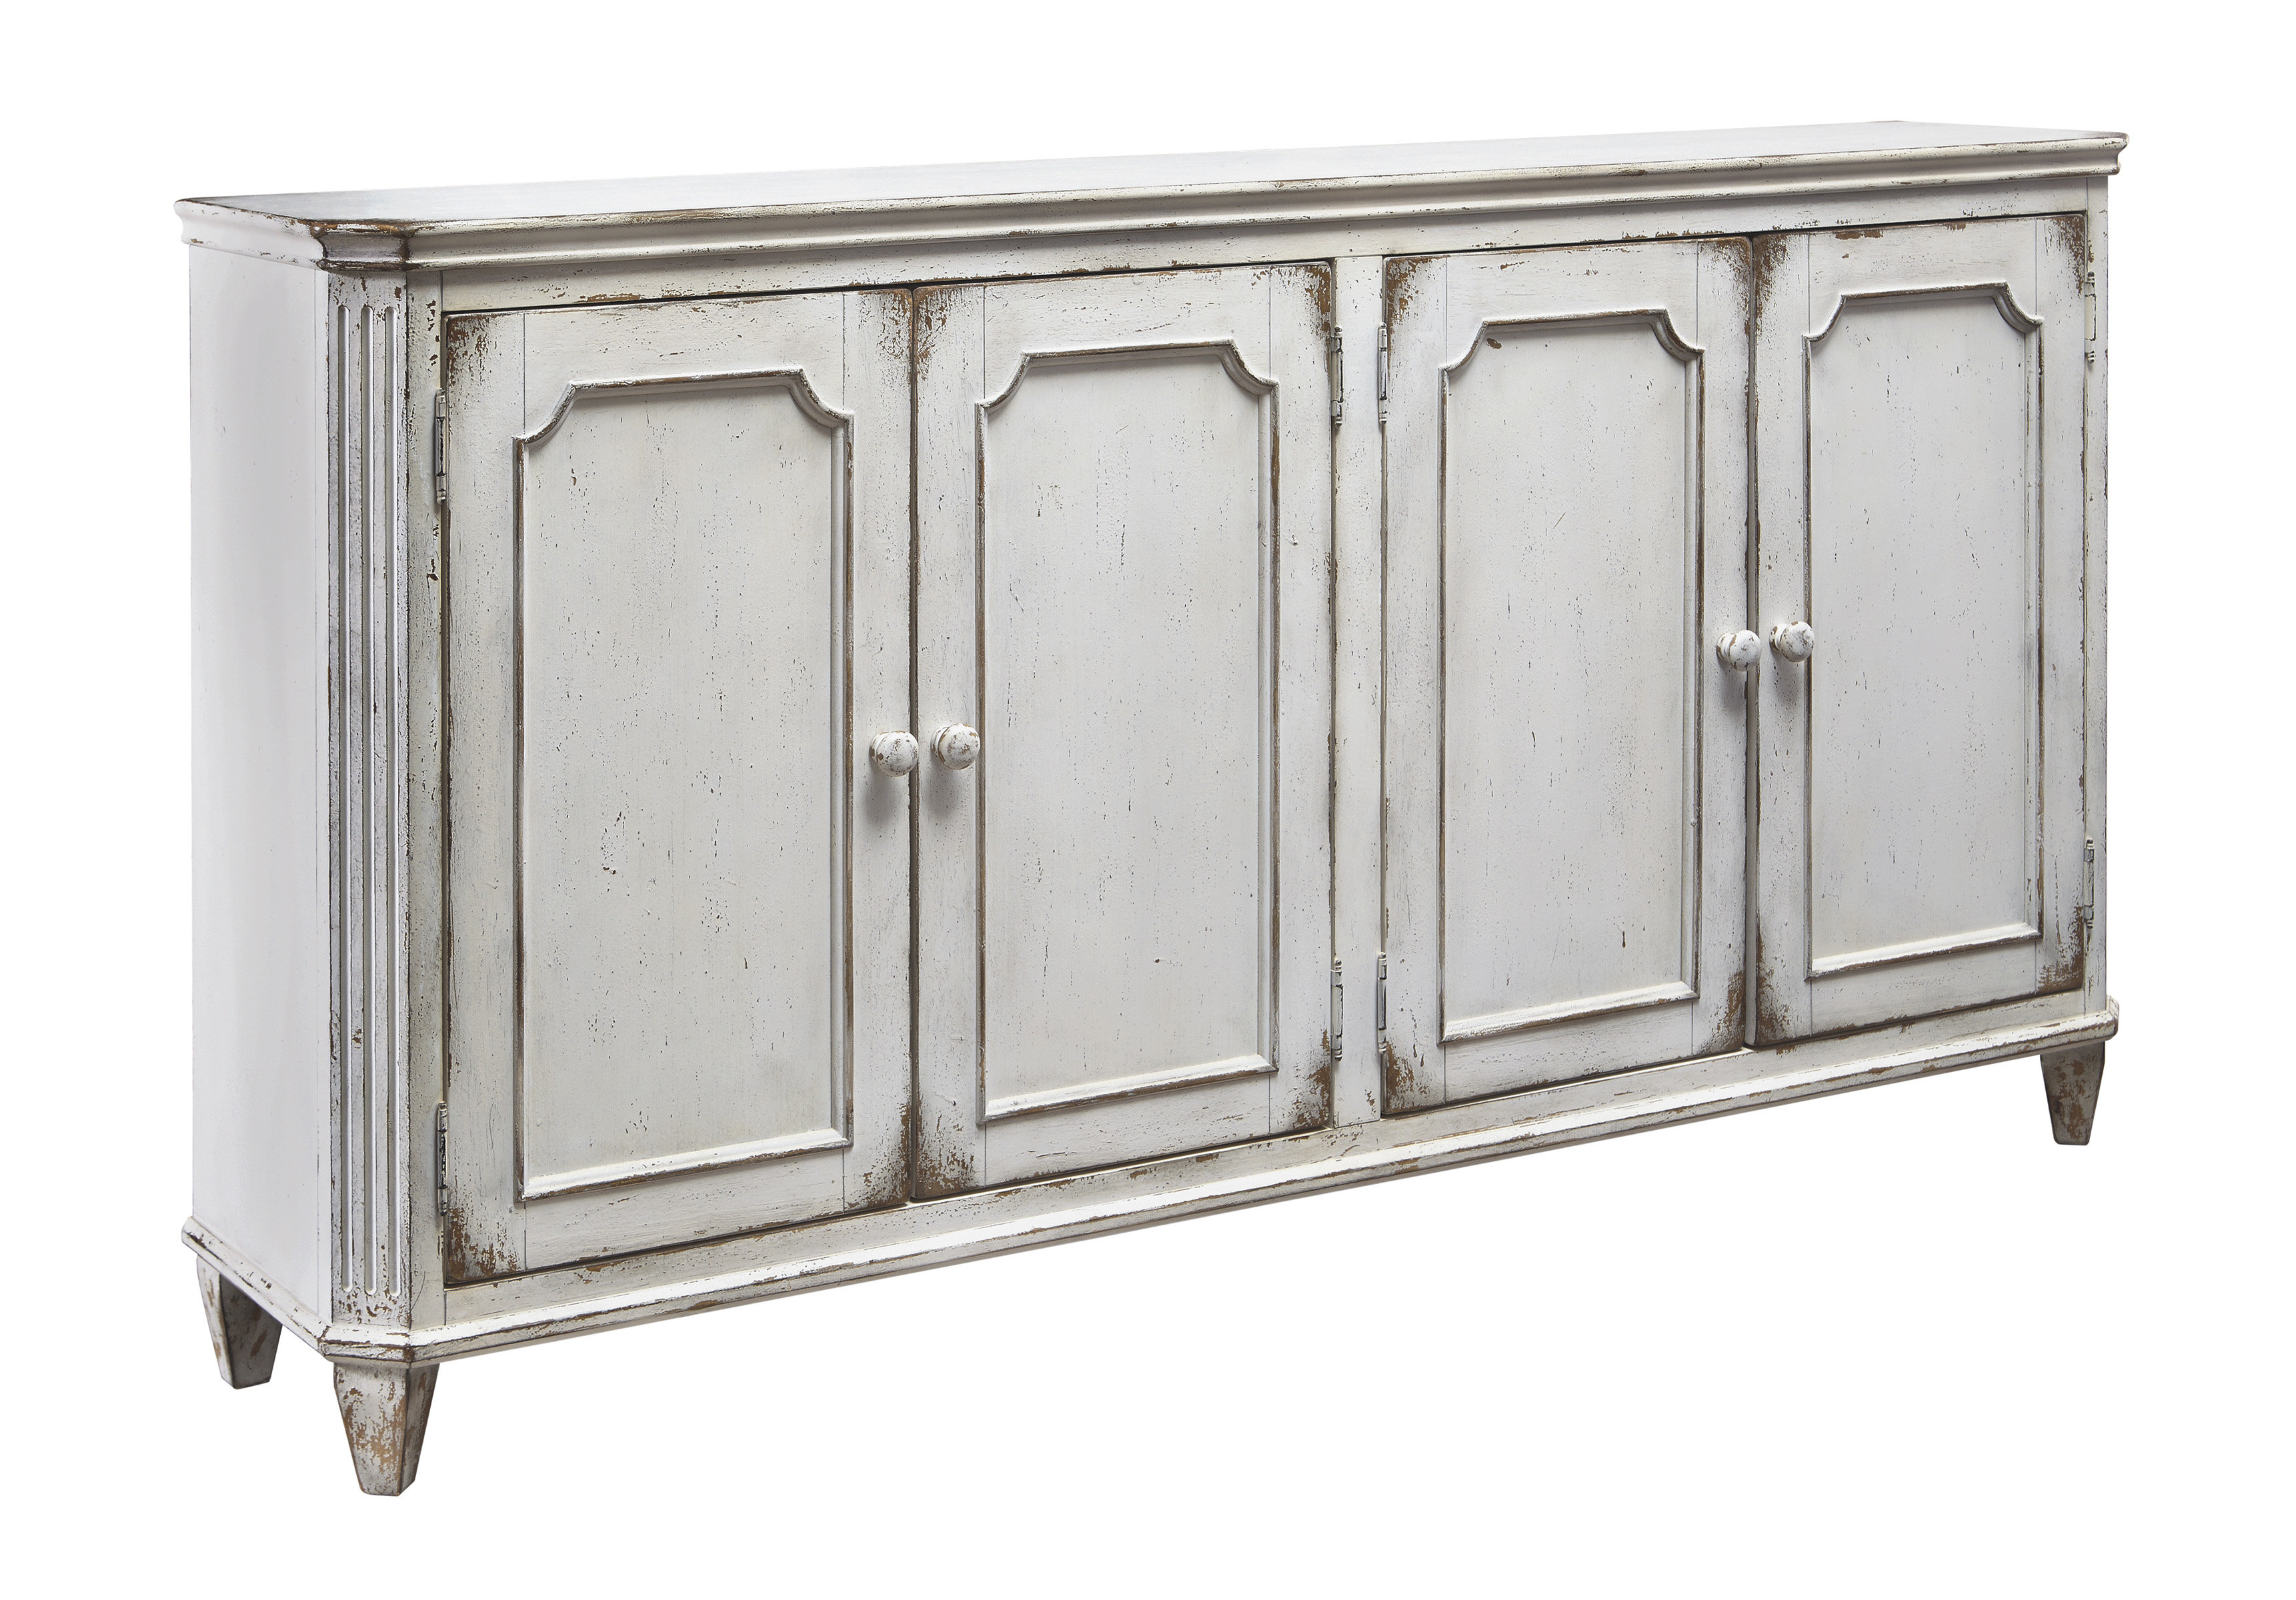 Farmhouse & Rustic Three Posts Sideboards & Buffets | Birch Lane Within Cazenovia Charnley Sideboards (View 12 of 30)